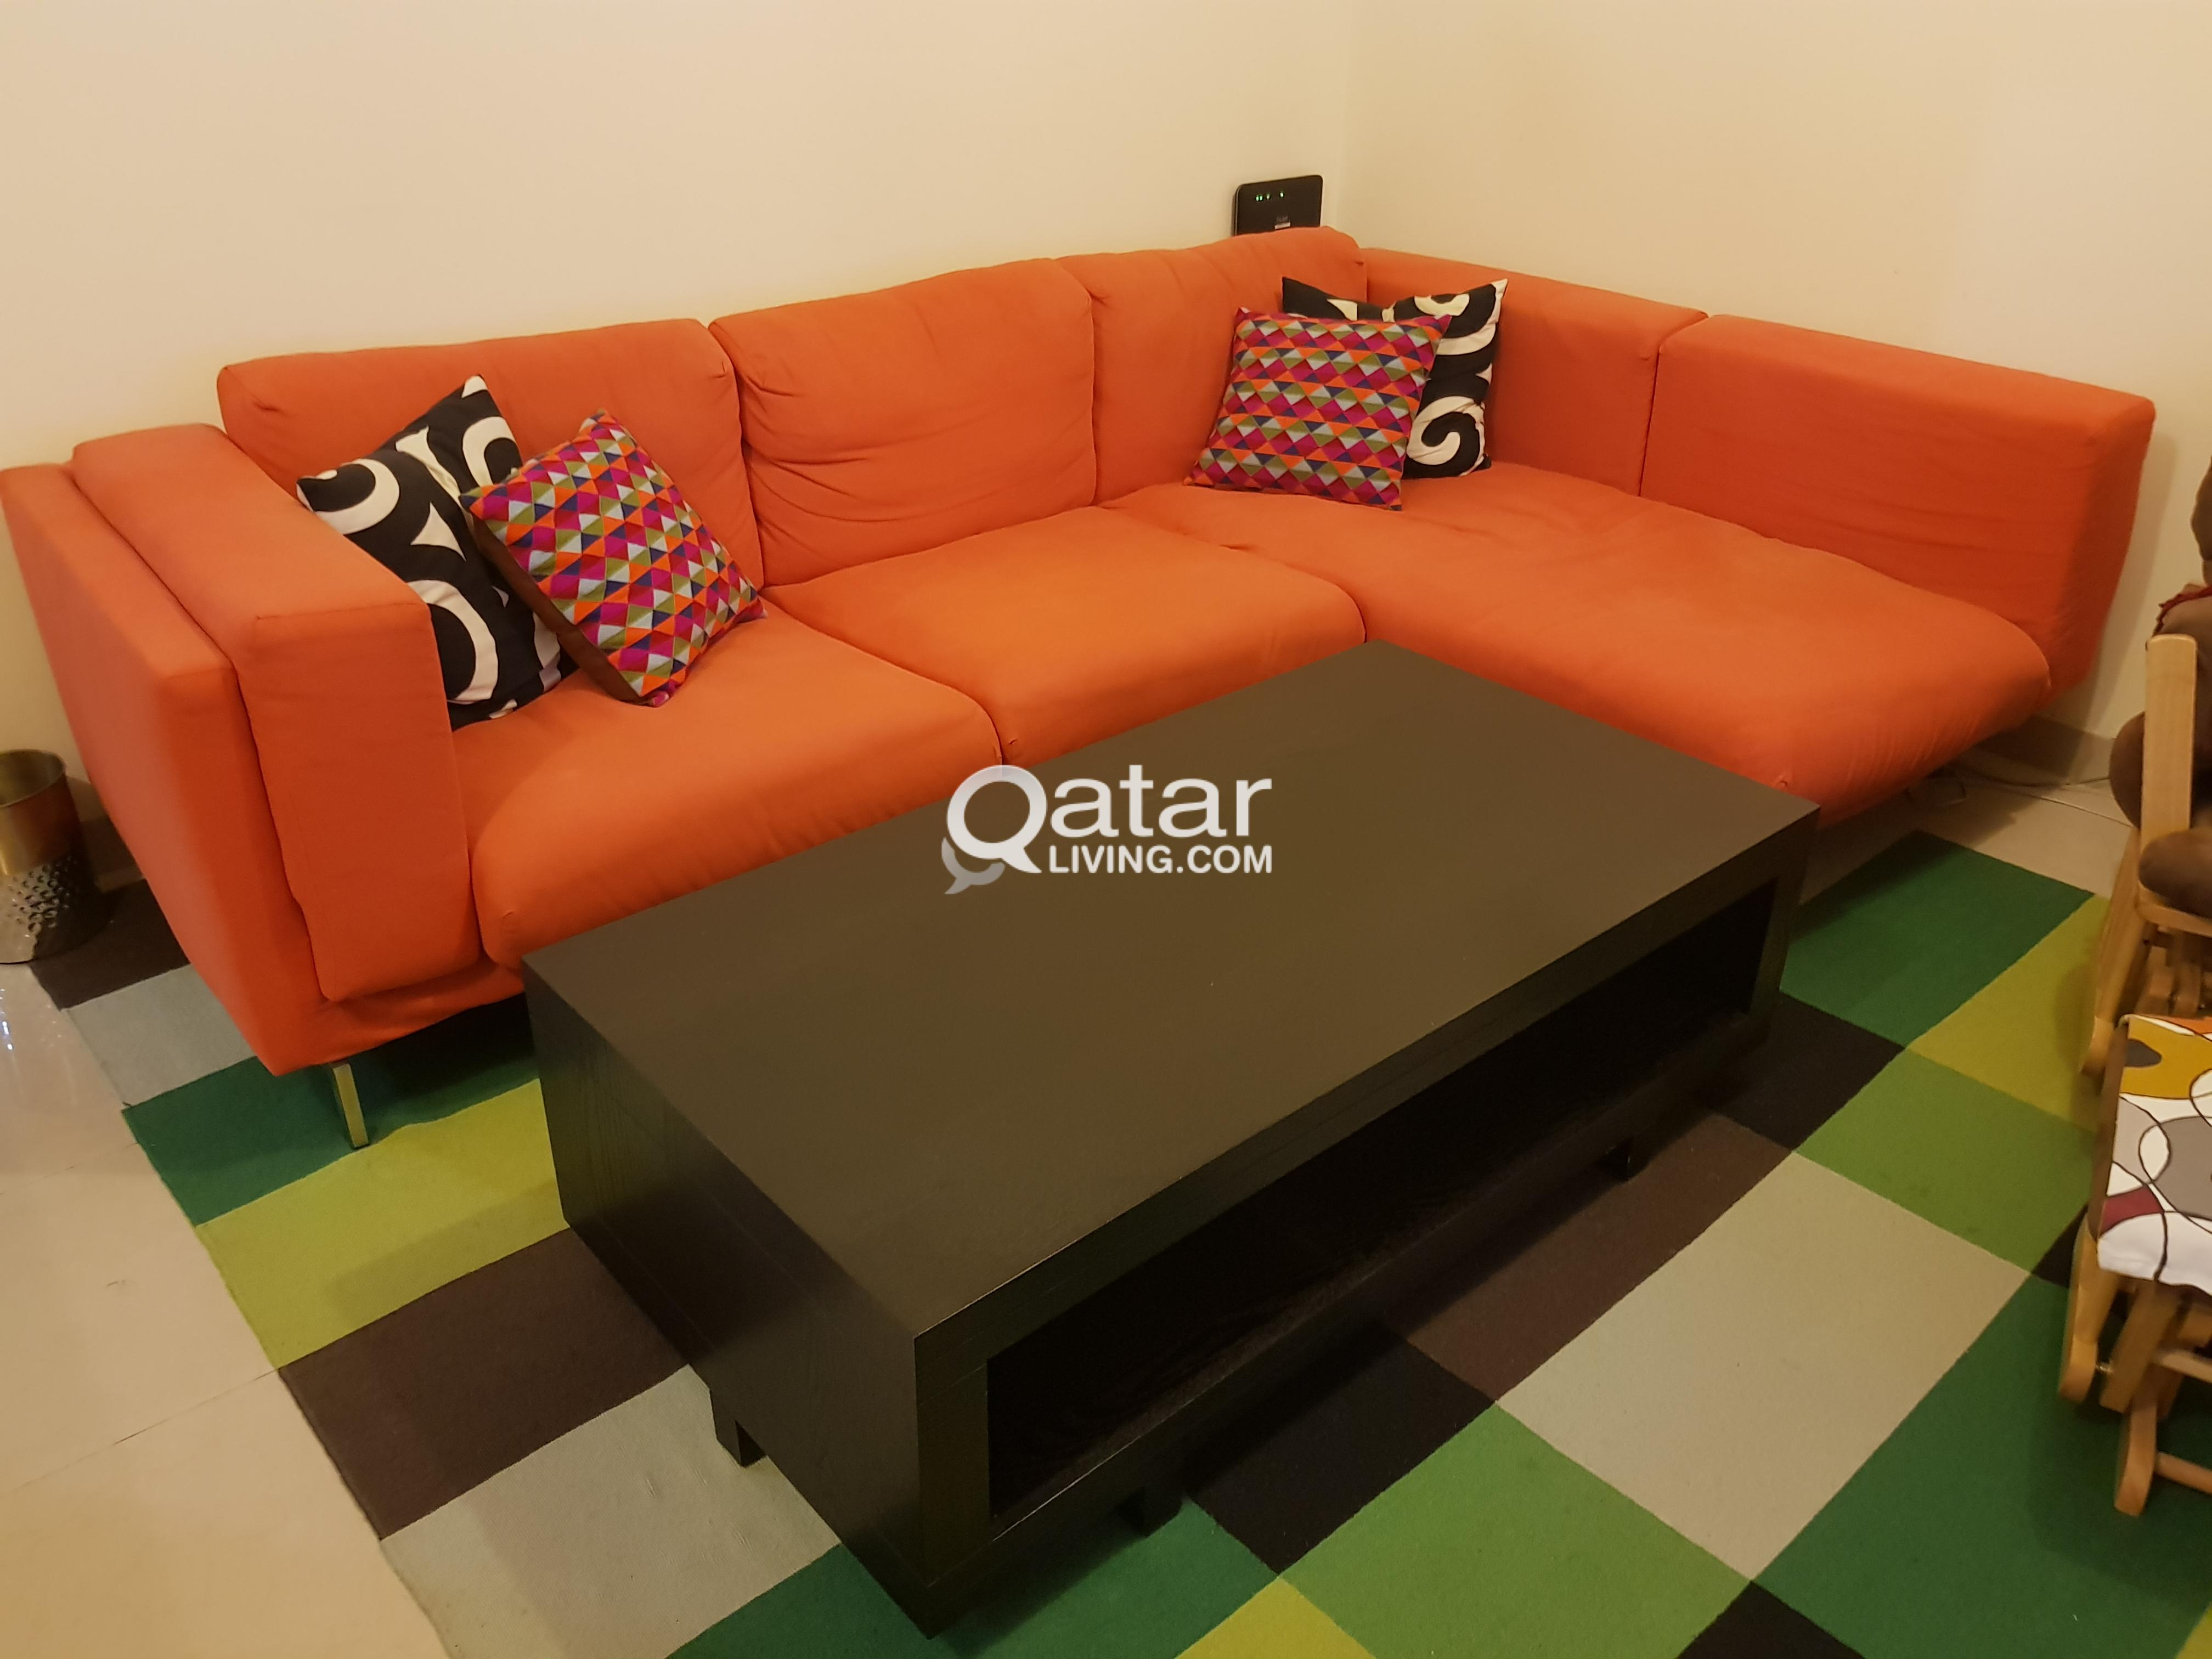 Title; Title; Title; Title. Information. L Shape Orange Couch ...